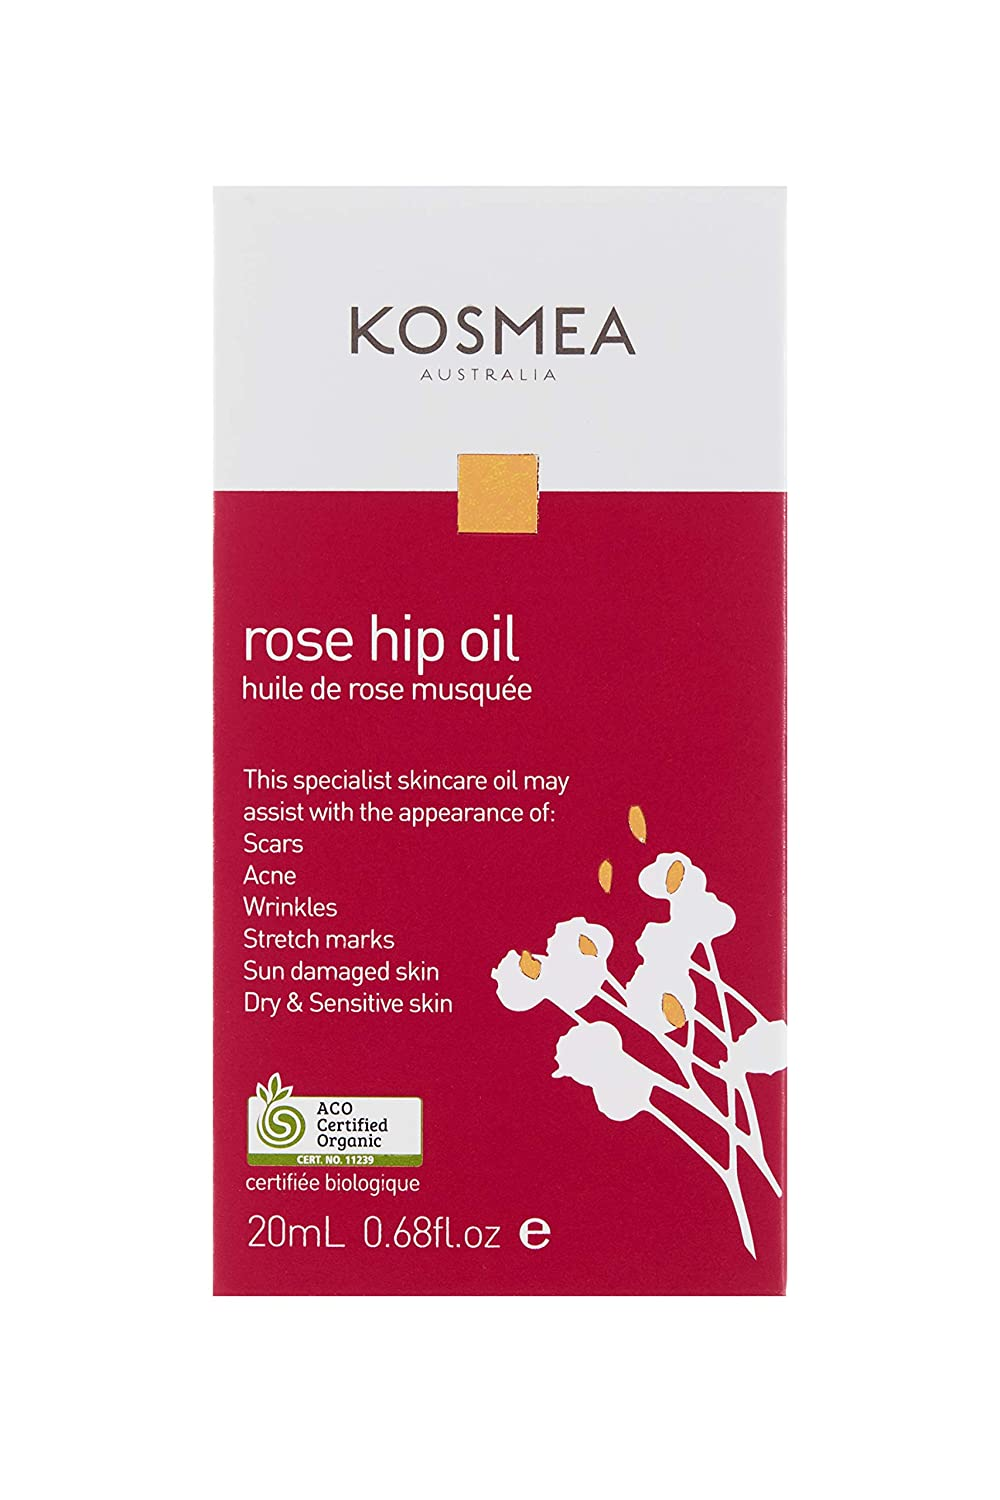 100% Certified Organic Rosehip Oil from Kosmea